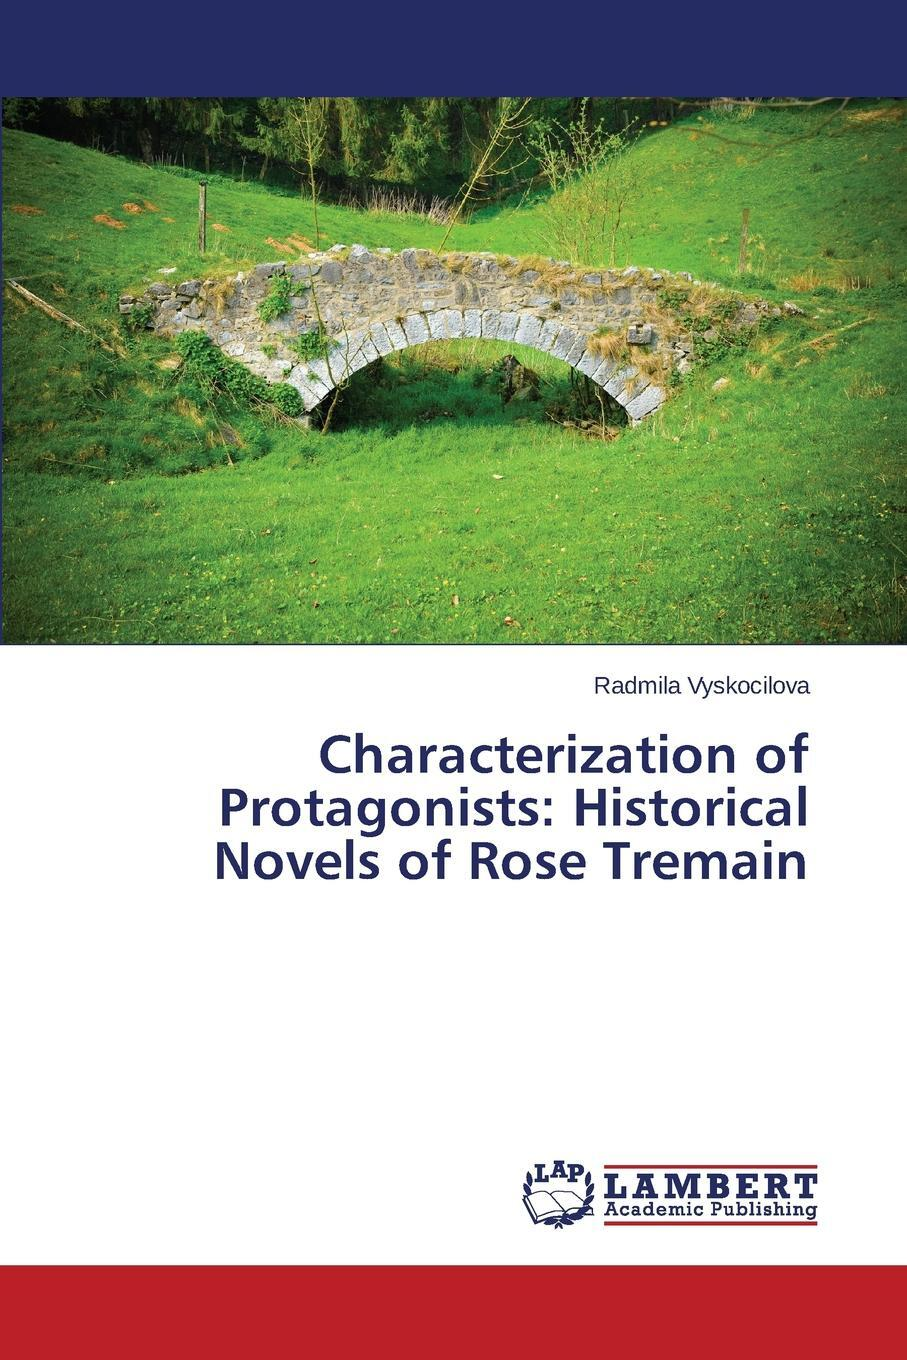 Characterization of Protagonists. Historical Novels of Rose Tremain. Vyskocilova Radmila